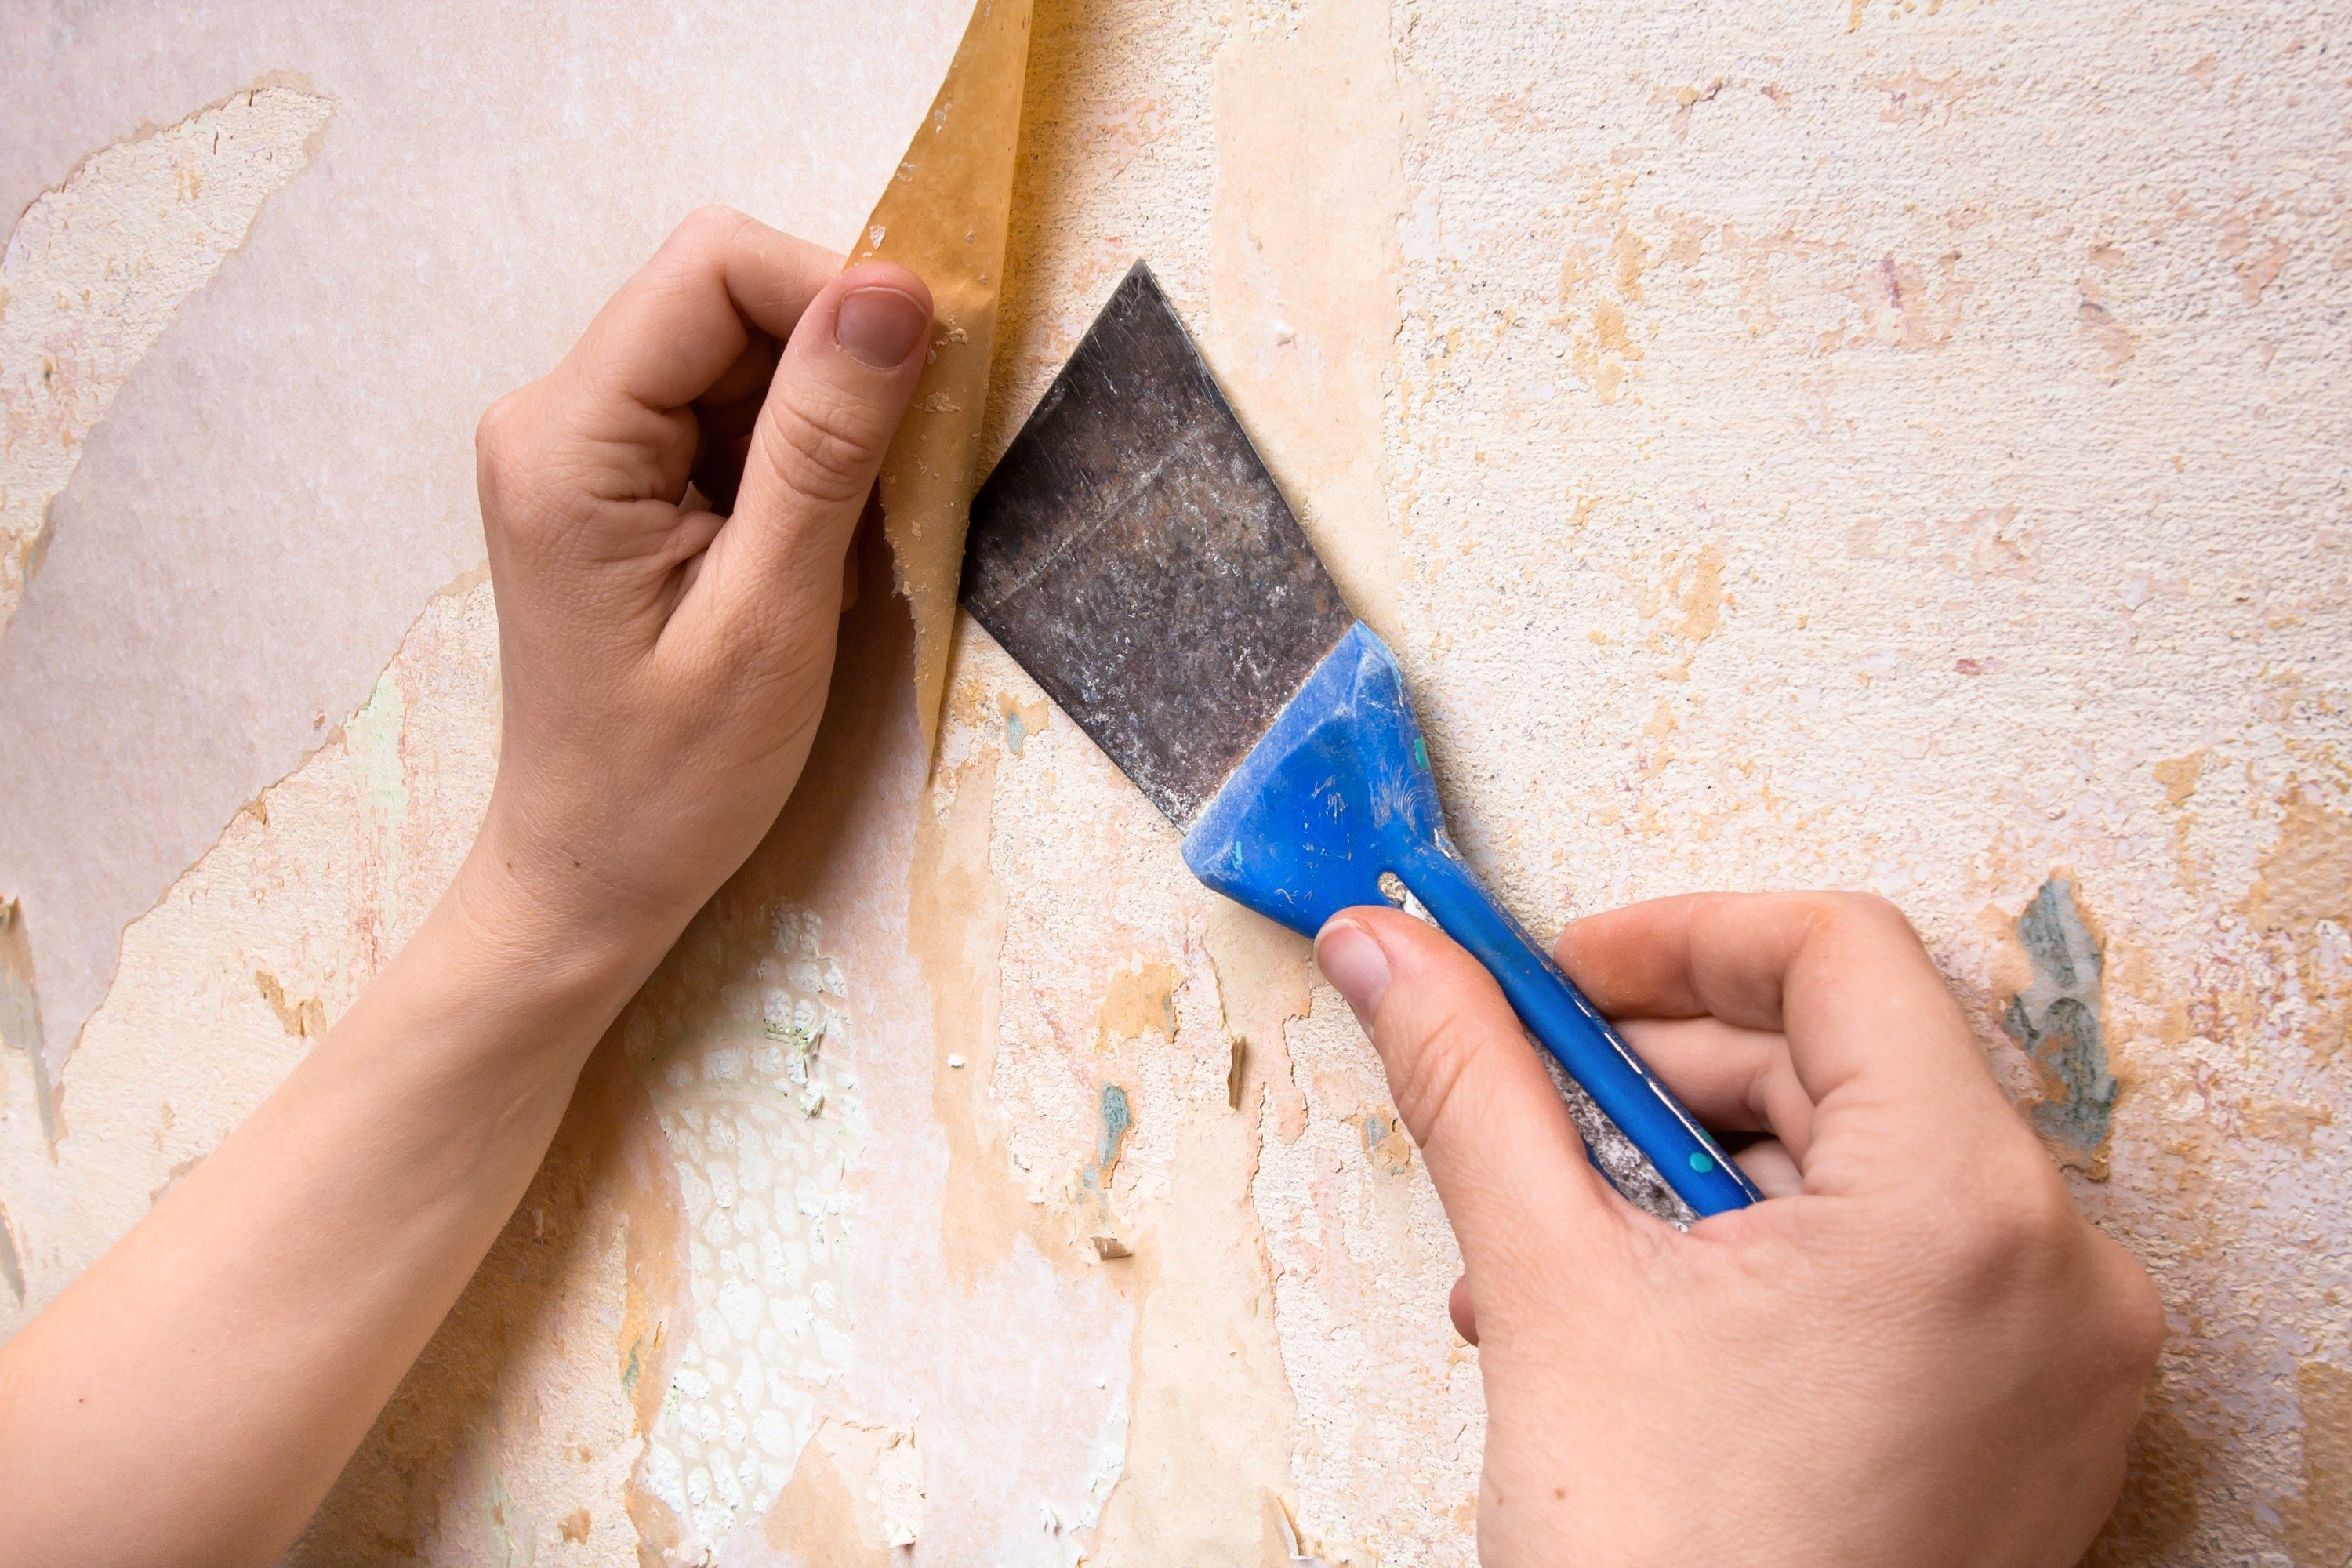 You Ve Stripped Off Your Old Wallpaper But The Job Isn T Done Learn How To Remove Wallpaper Glue T Remove Wallpaper Glue Cleaning Hacks Cleaning Painted Walls